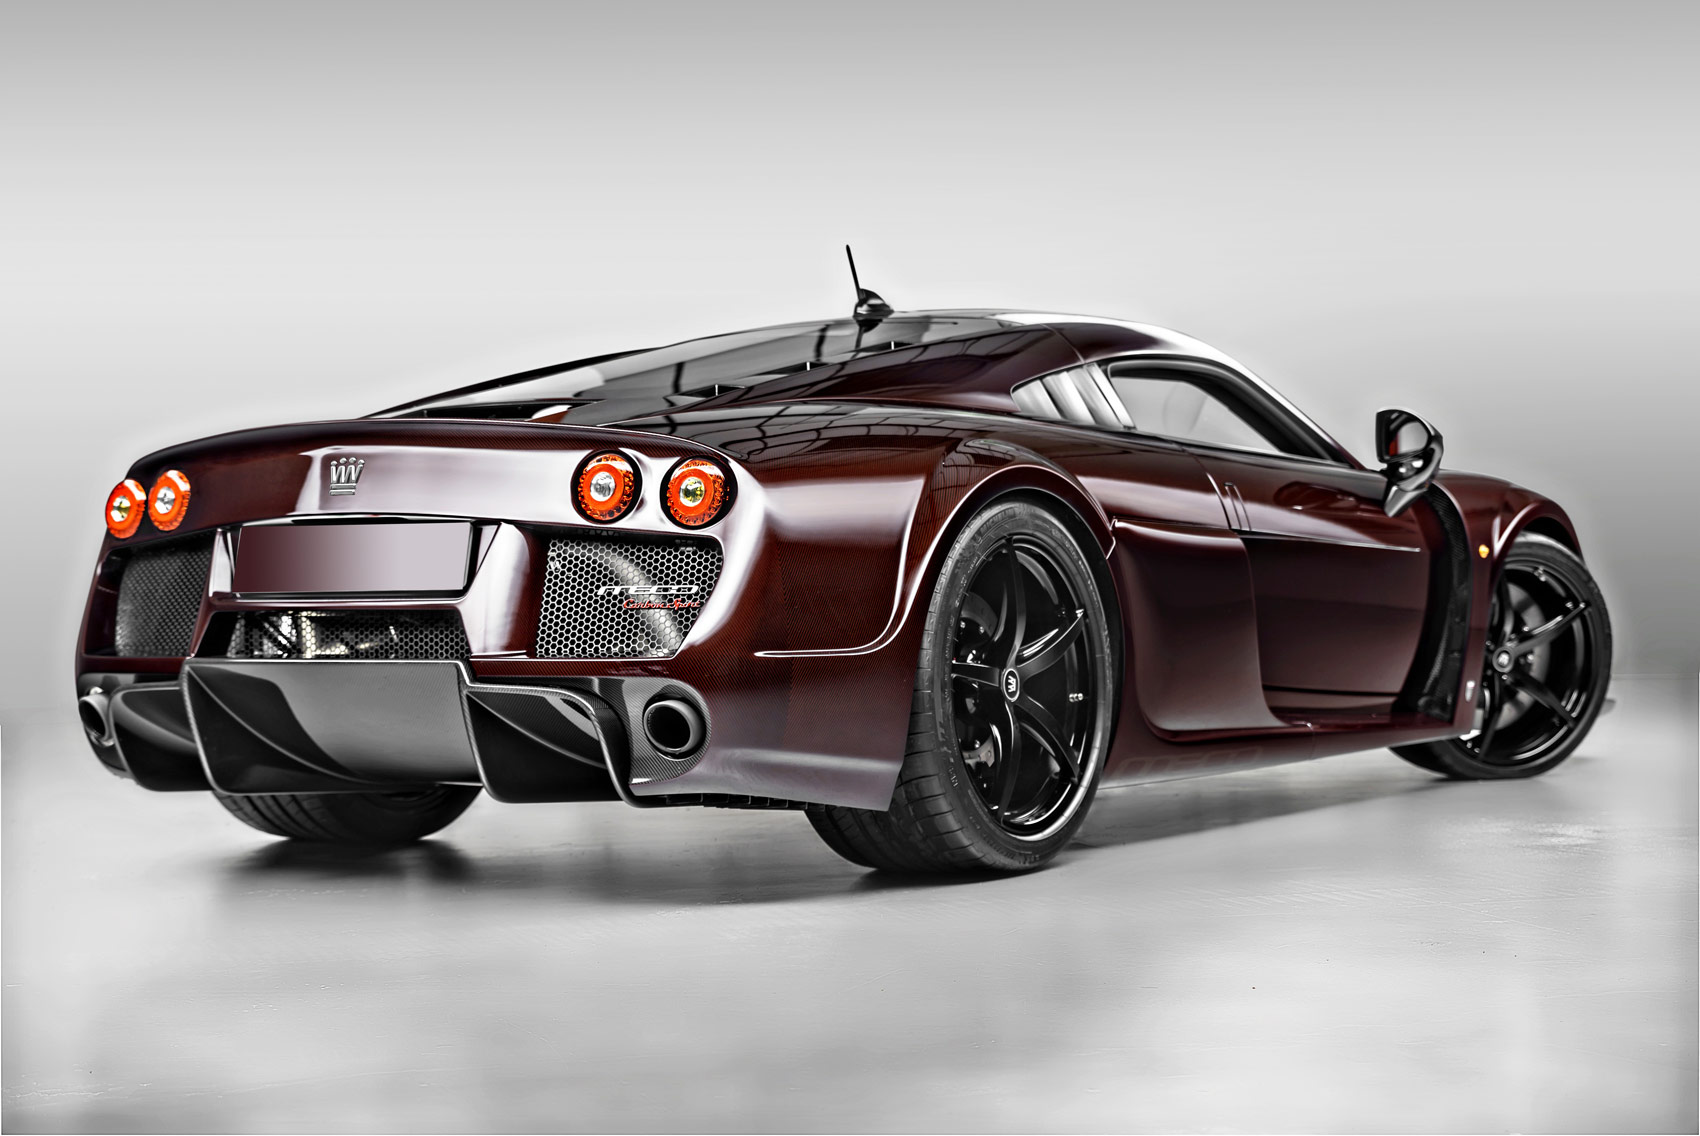 Liberty House Group To Provide The Chassis For Noble M600 British supercar